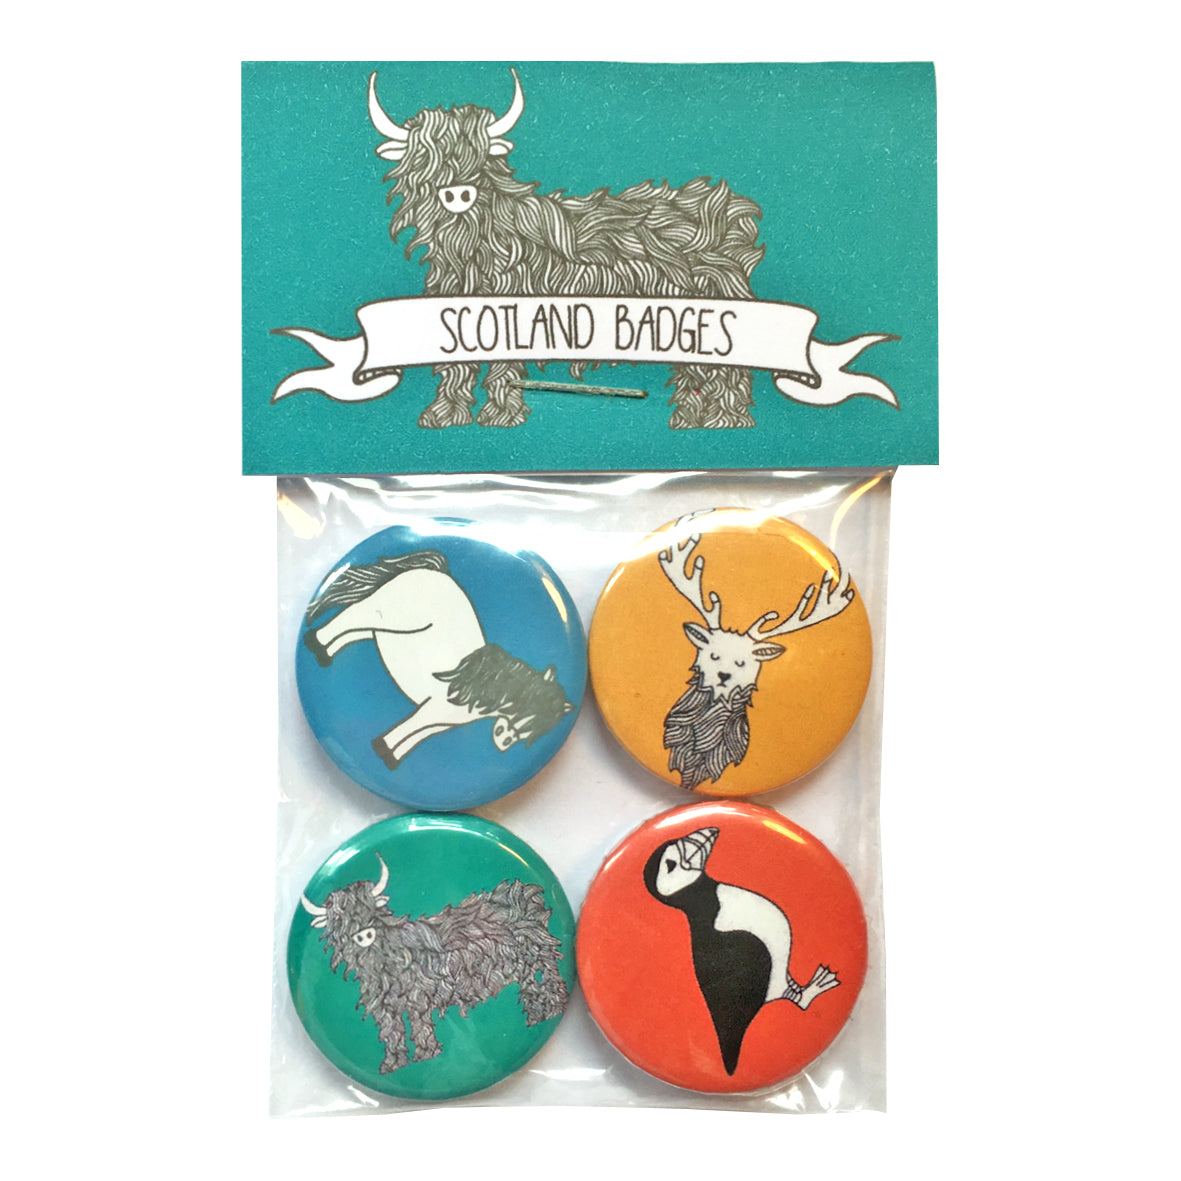 Packet containing four Scottish themed badges